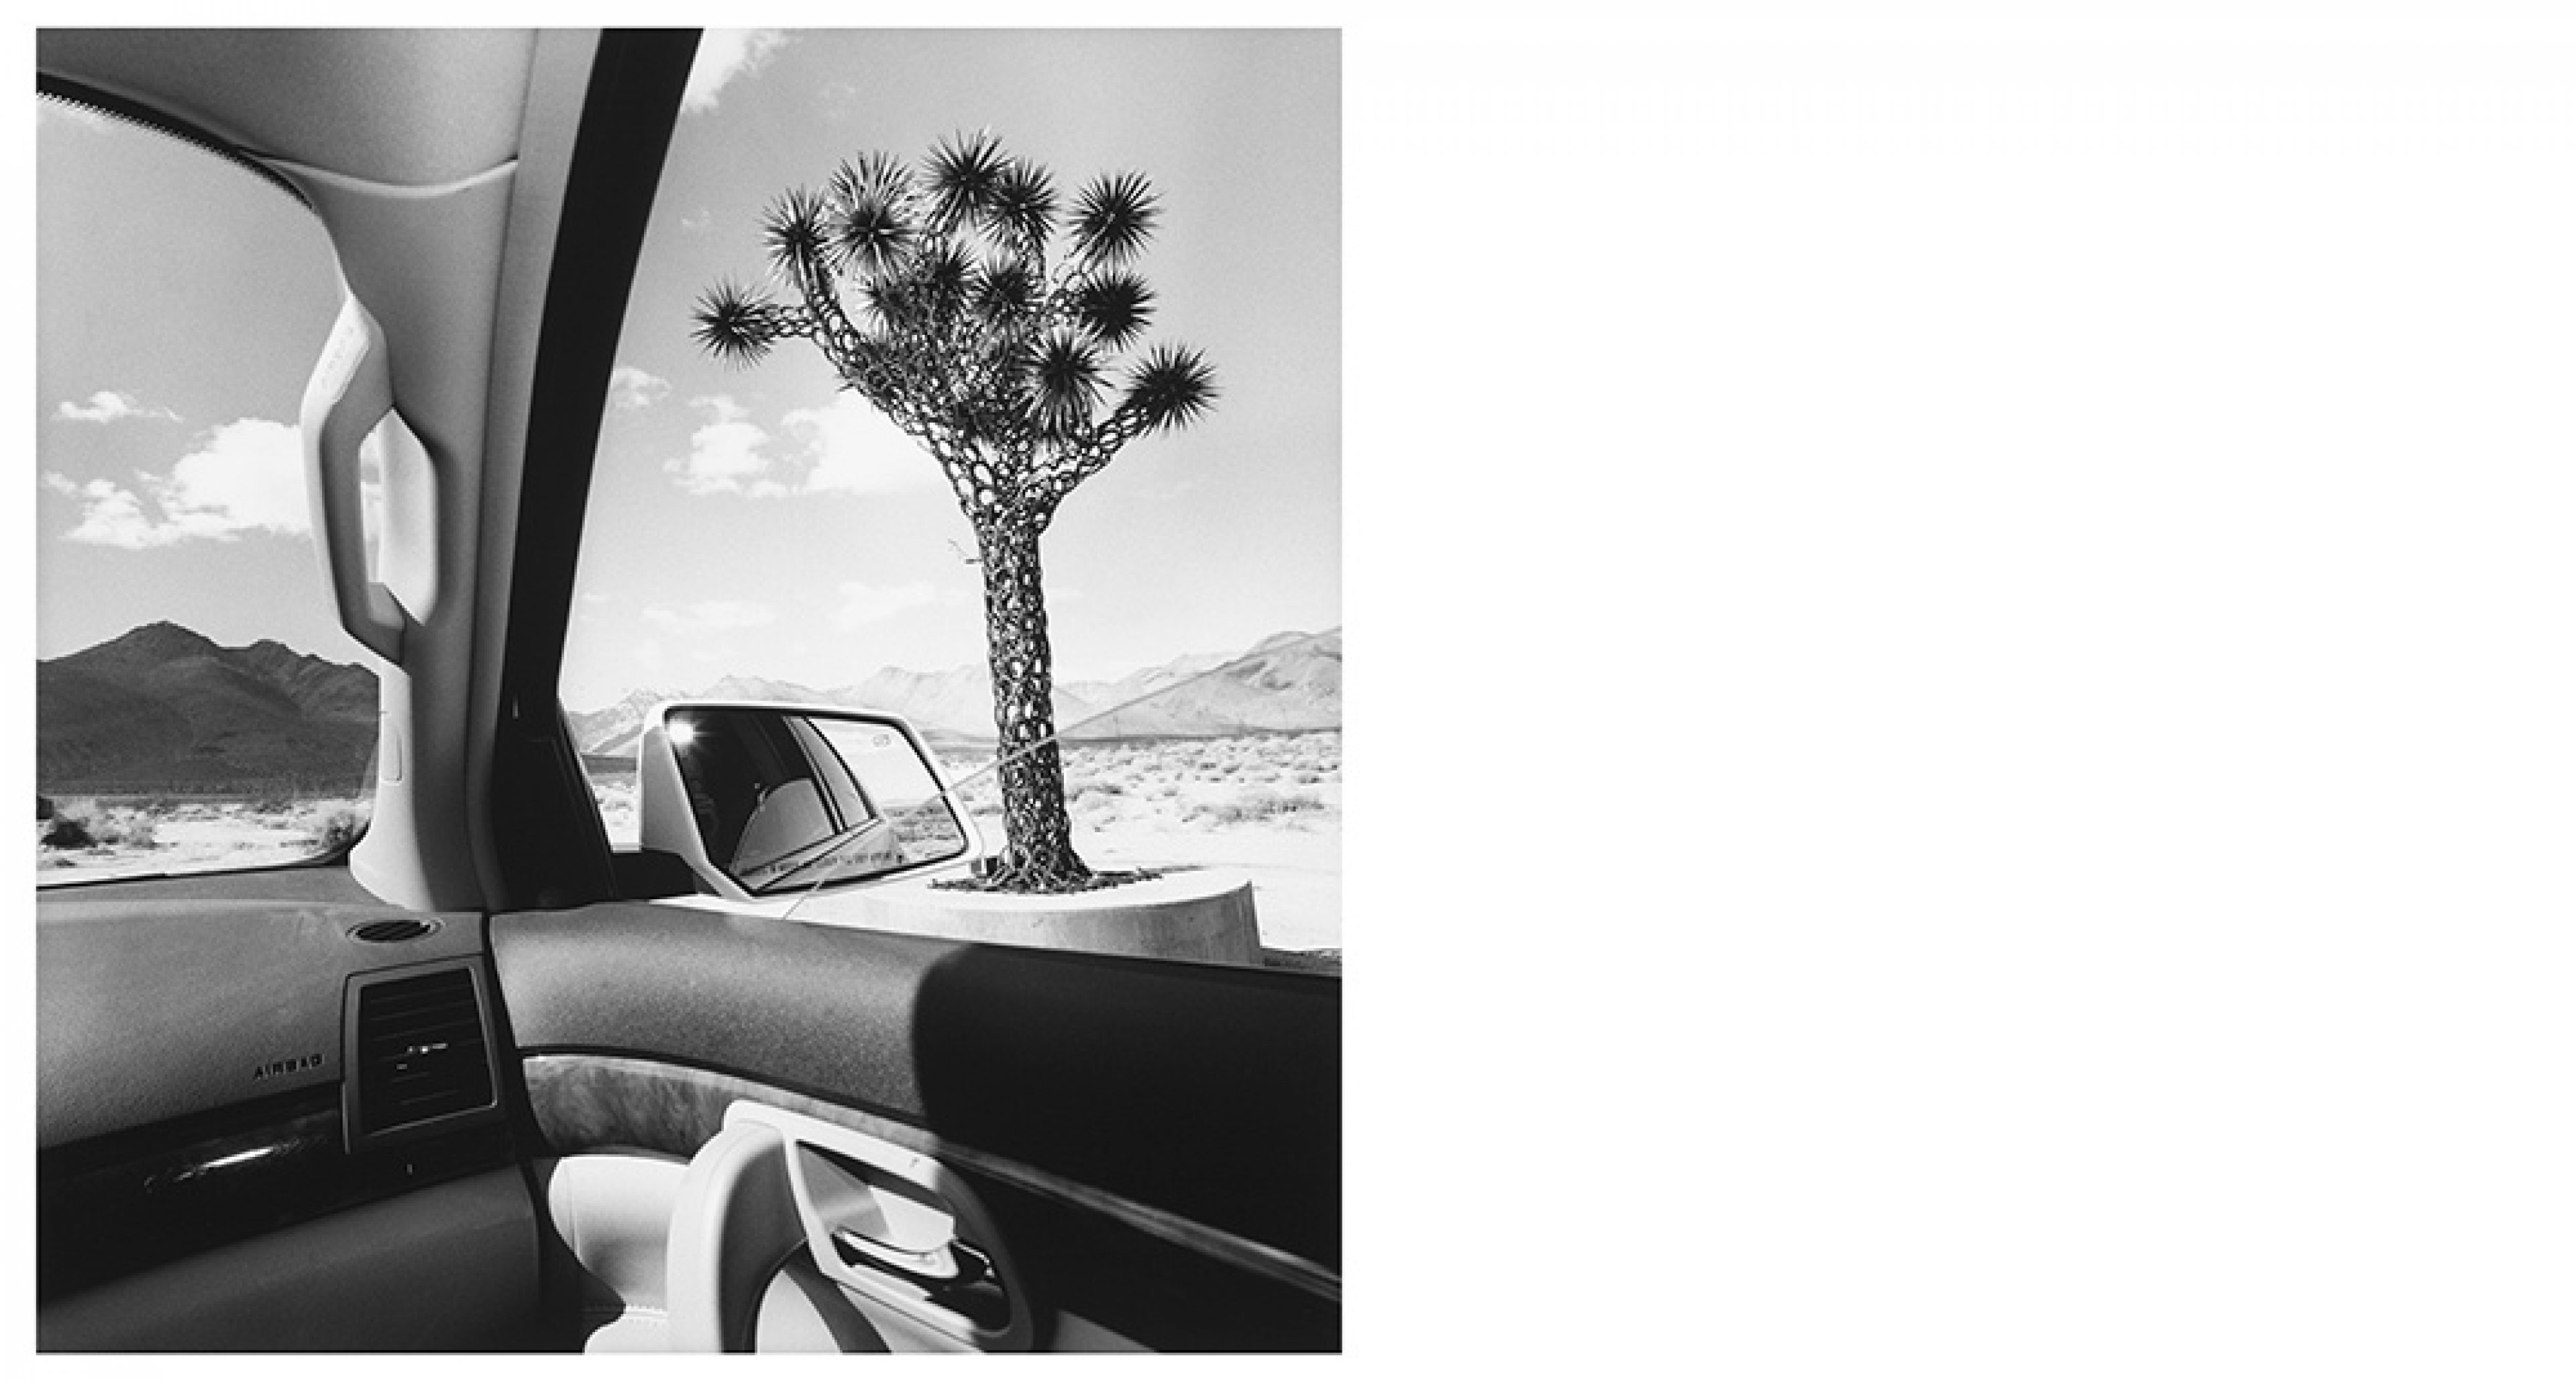 Lee Friedlander, California, 2008 From America by Car series Gelatin silver print, 37.5 × 37.5 cm Courtesy Fraenkel Gallery, San Francisco © Lee Friedlander, courtesy Fraenkel Gallery, San Francisco